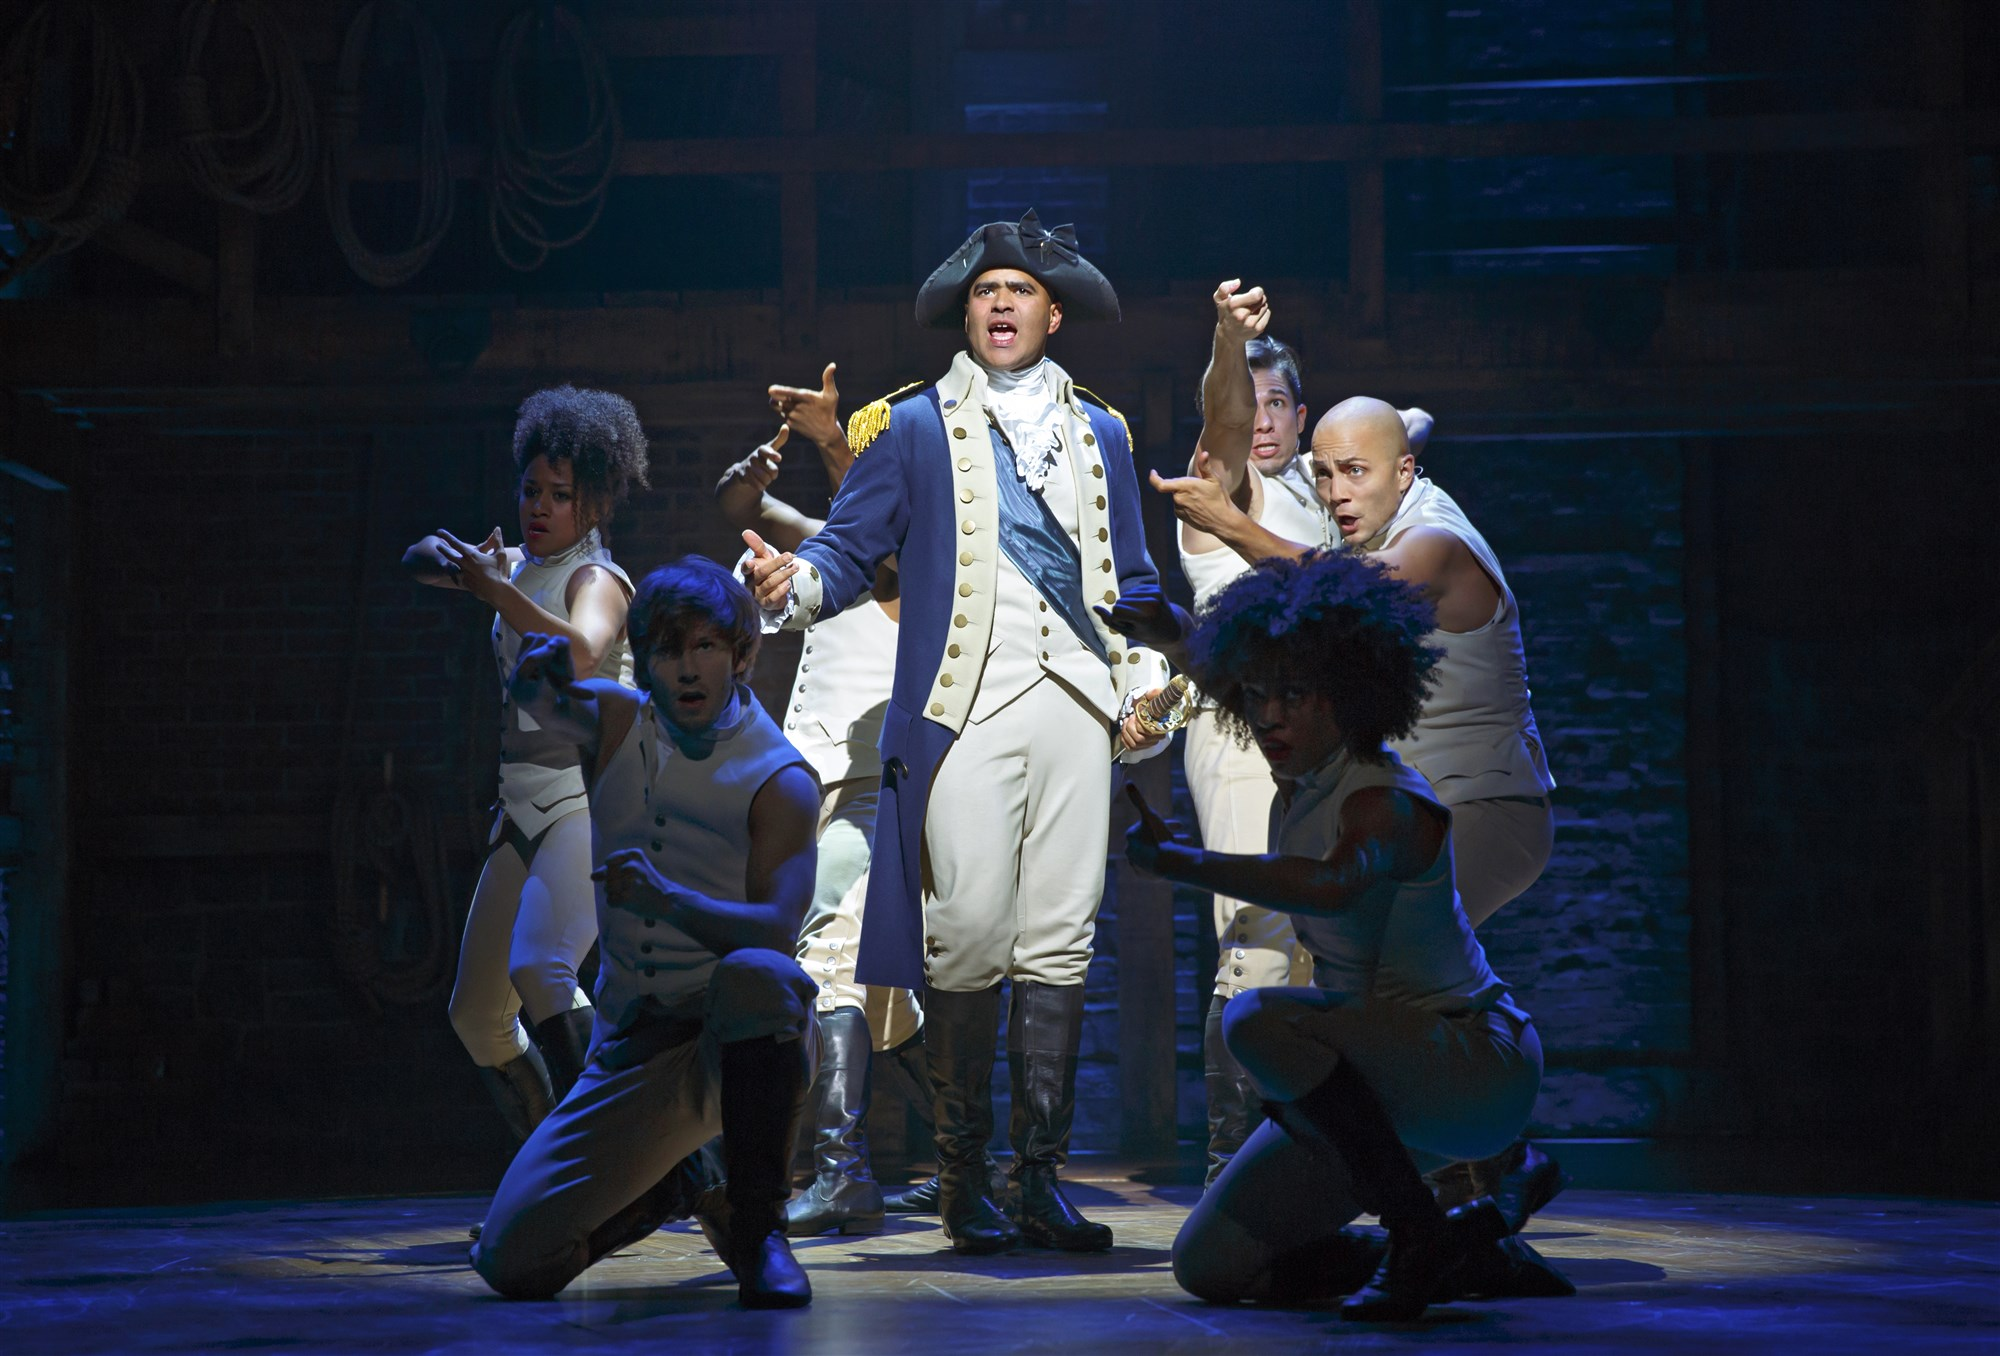 George Washington in Hamilton